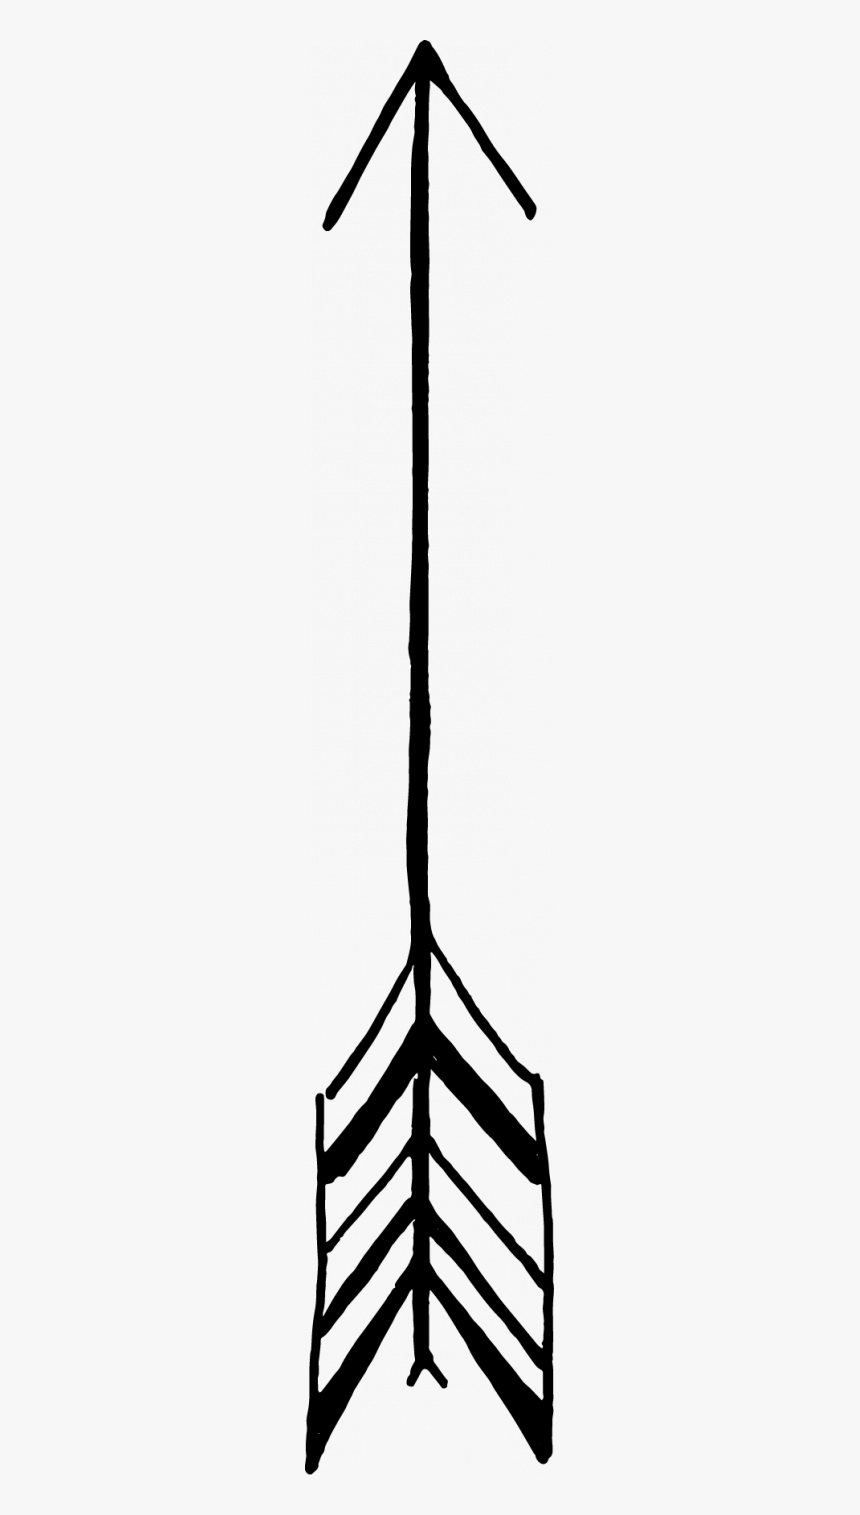 Cute Arrow Going Up, HD Png Download, Free Download